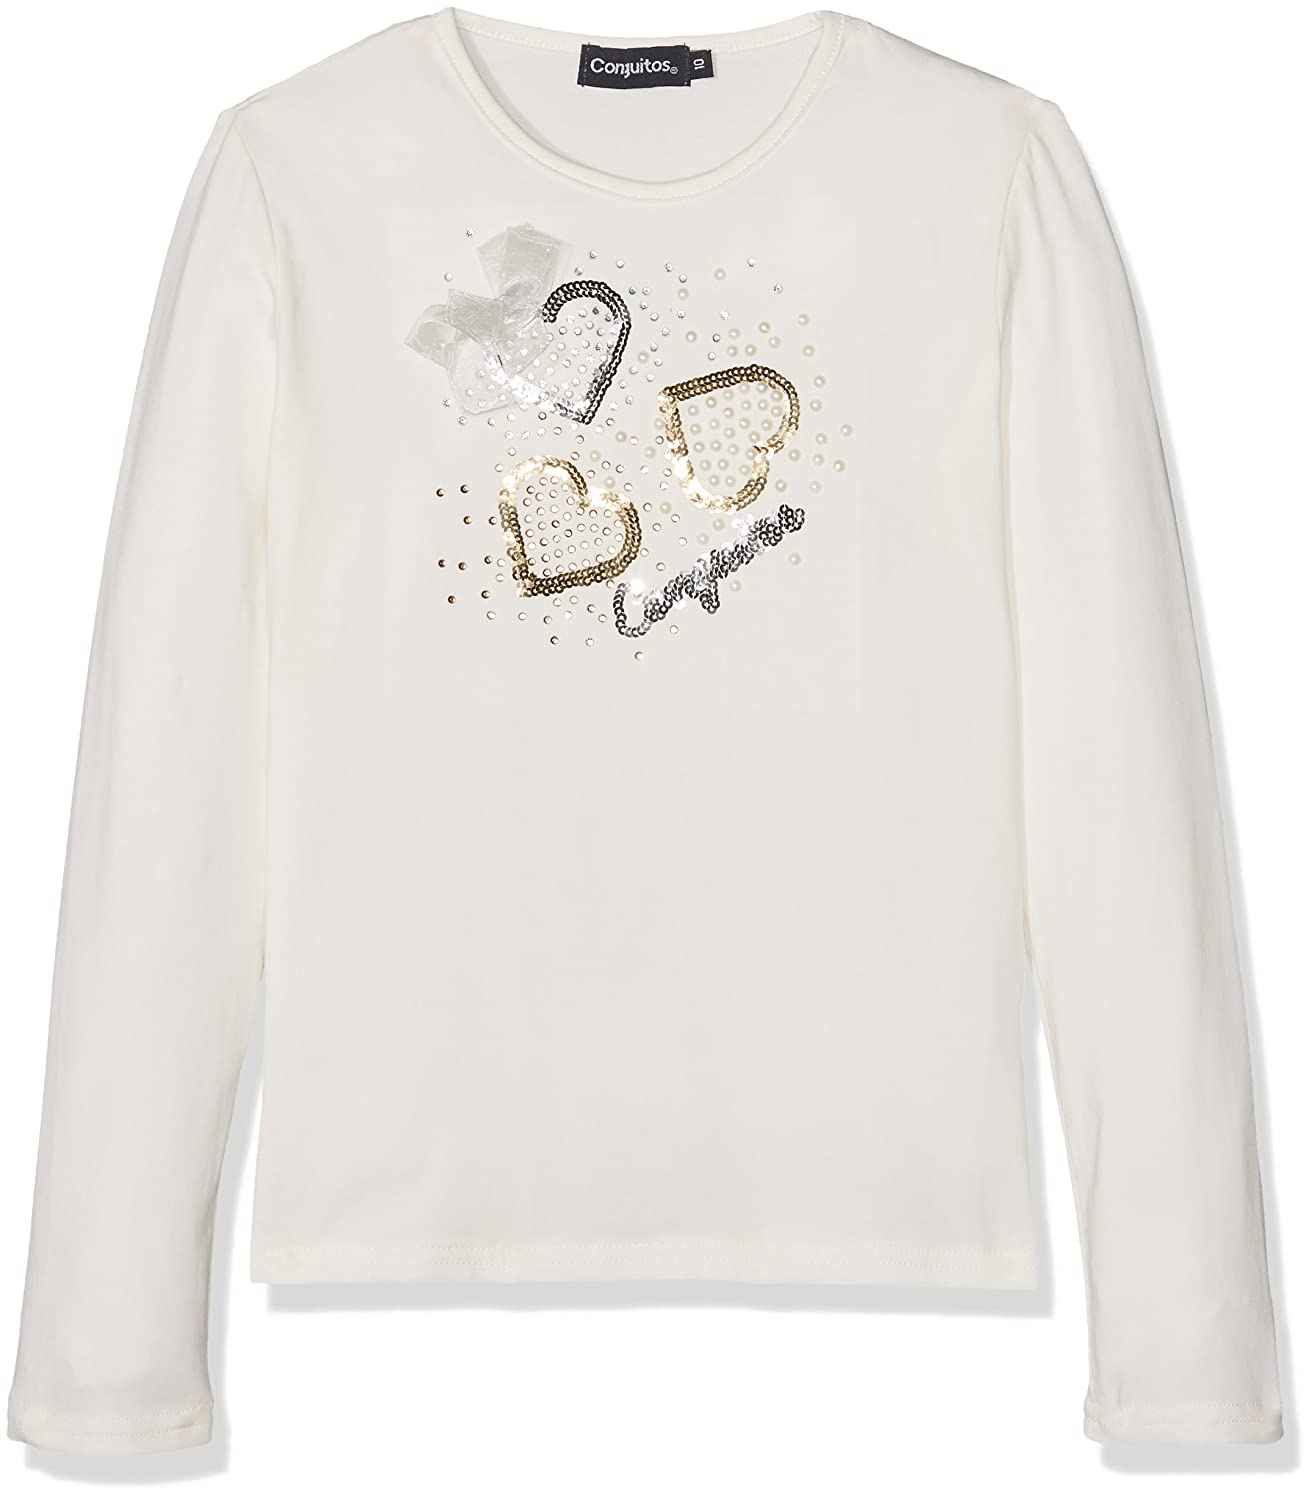 Conguitos Girl's Longsleeve T-Shirt (Beige 0043) 8 Years (Size:8A) HIC50000